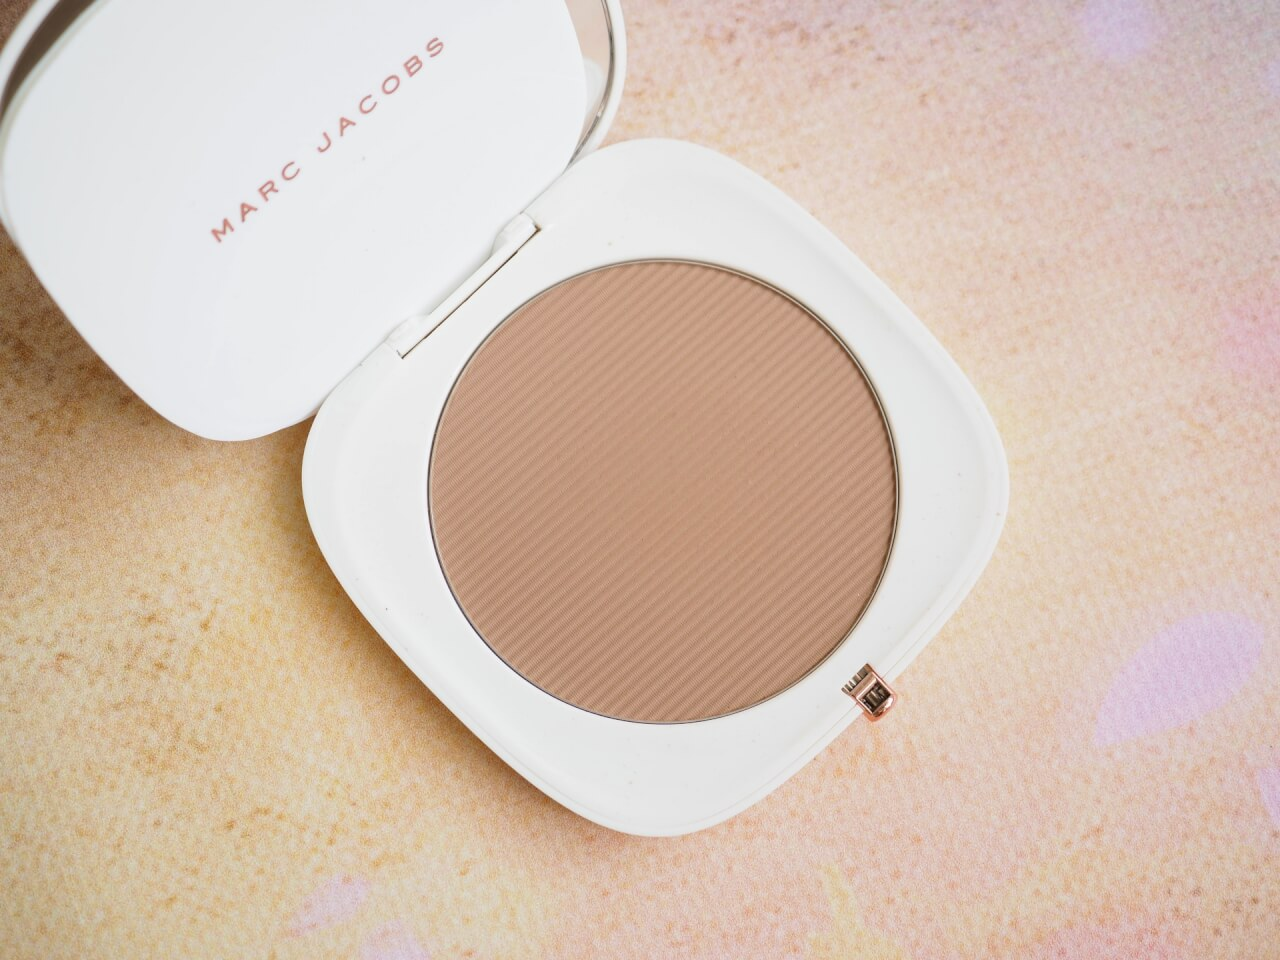 Bronzer Marc Jacobs 104 Tan- Tastic!